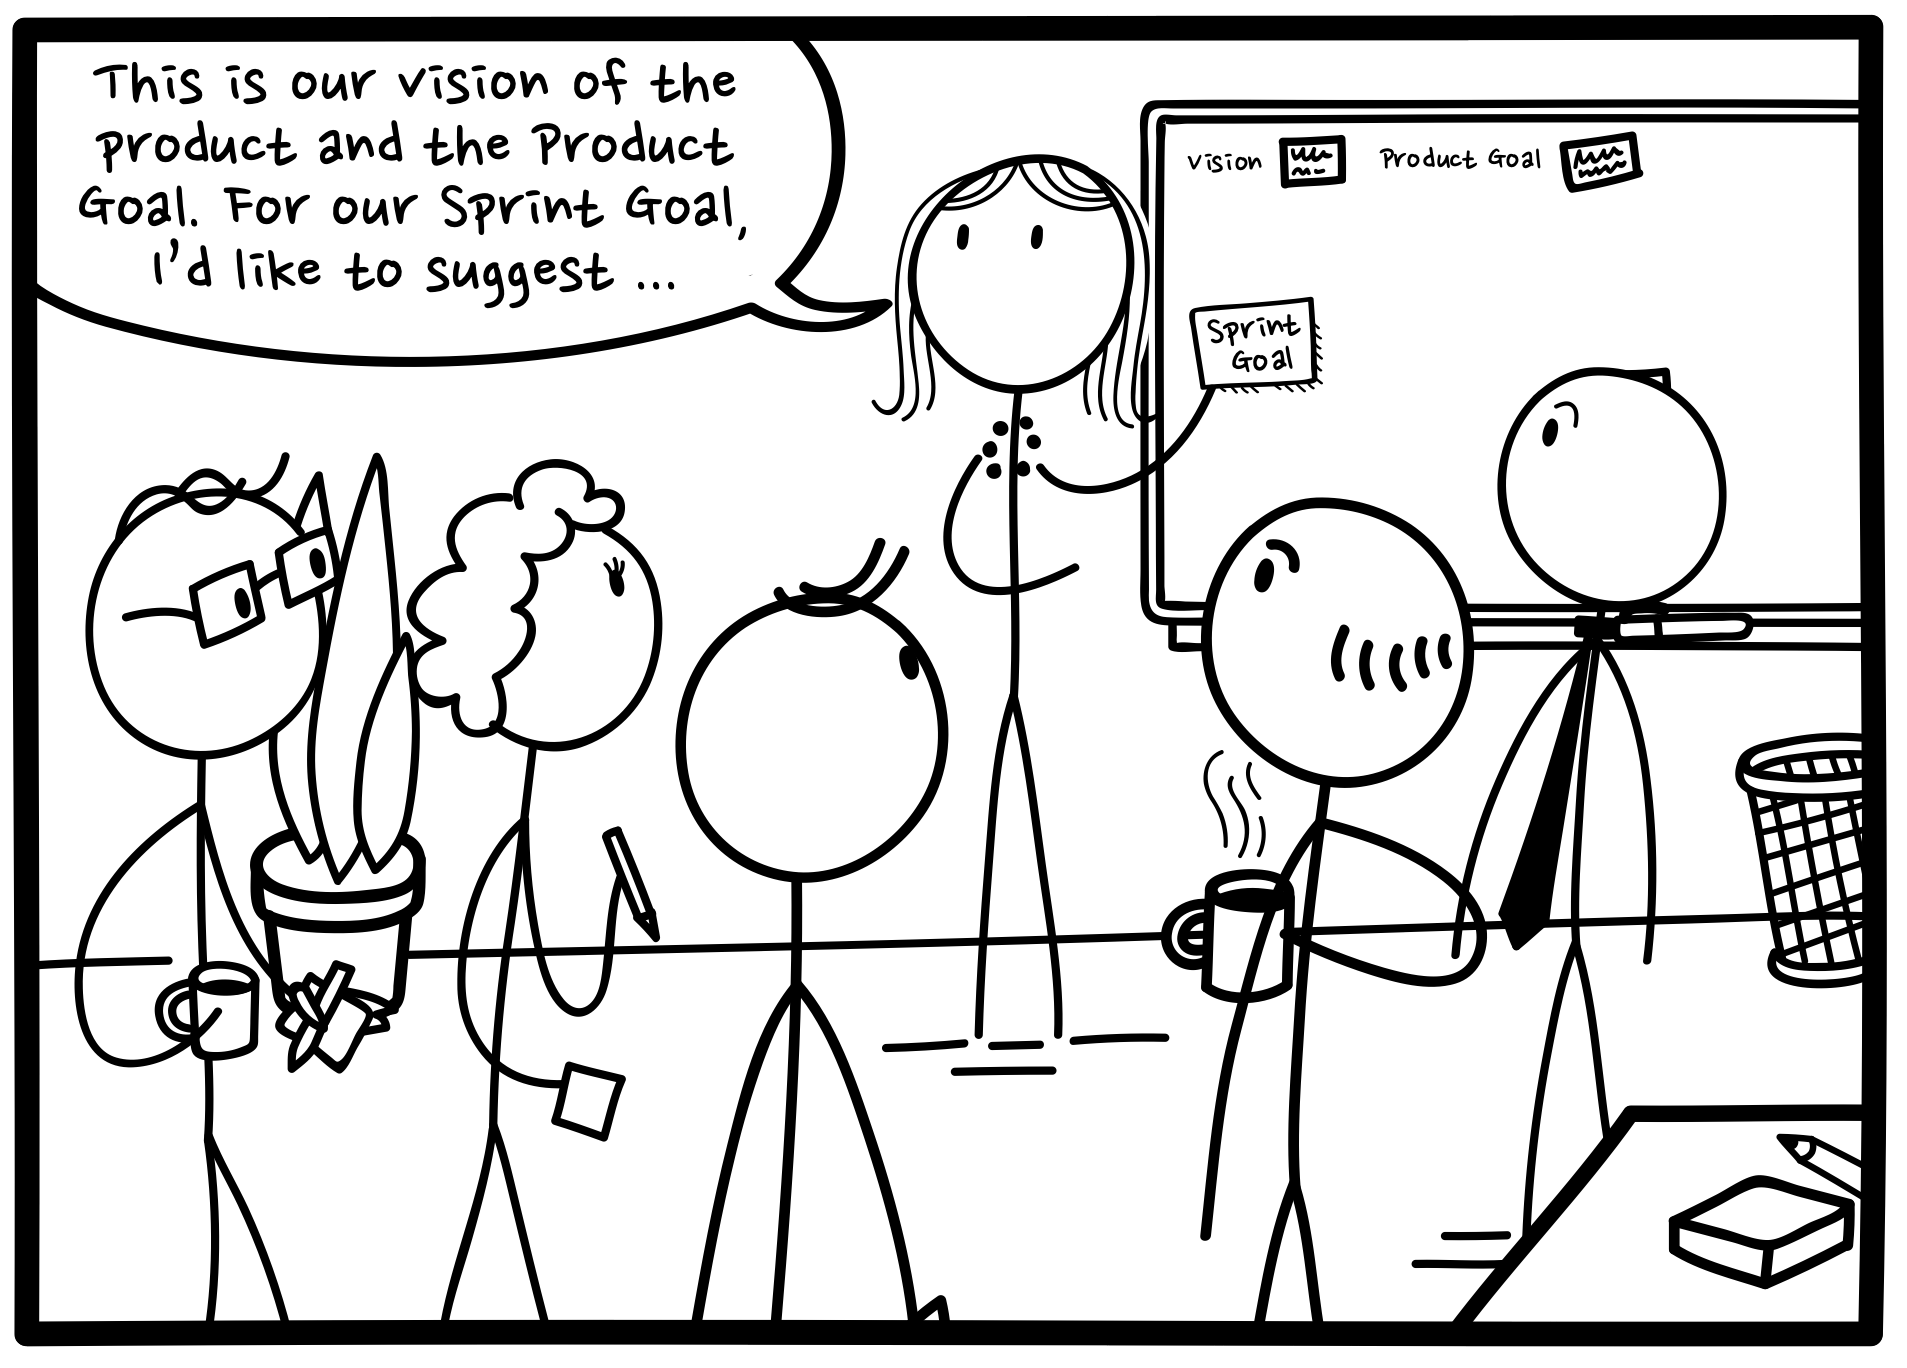 Vision and Product Goal ...